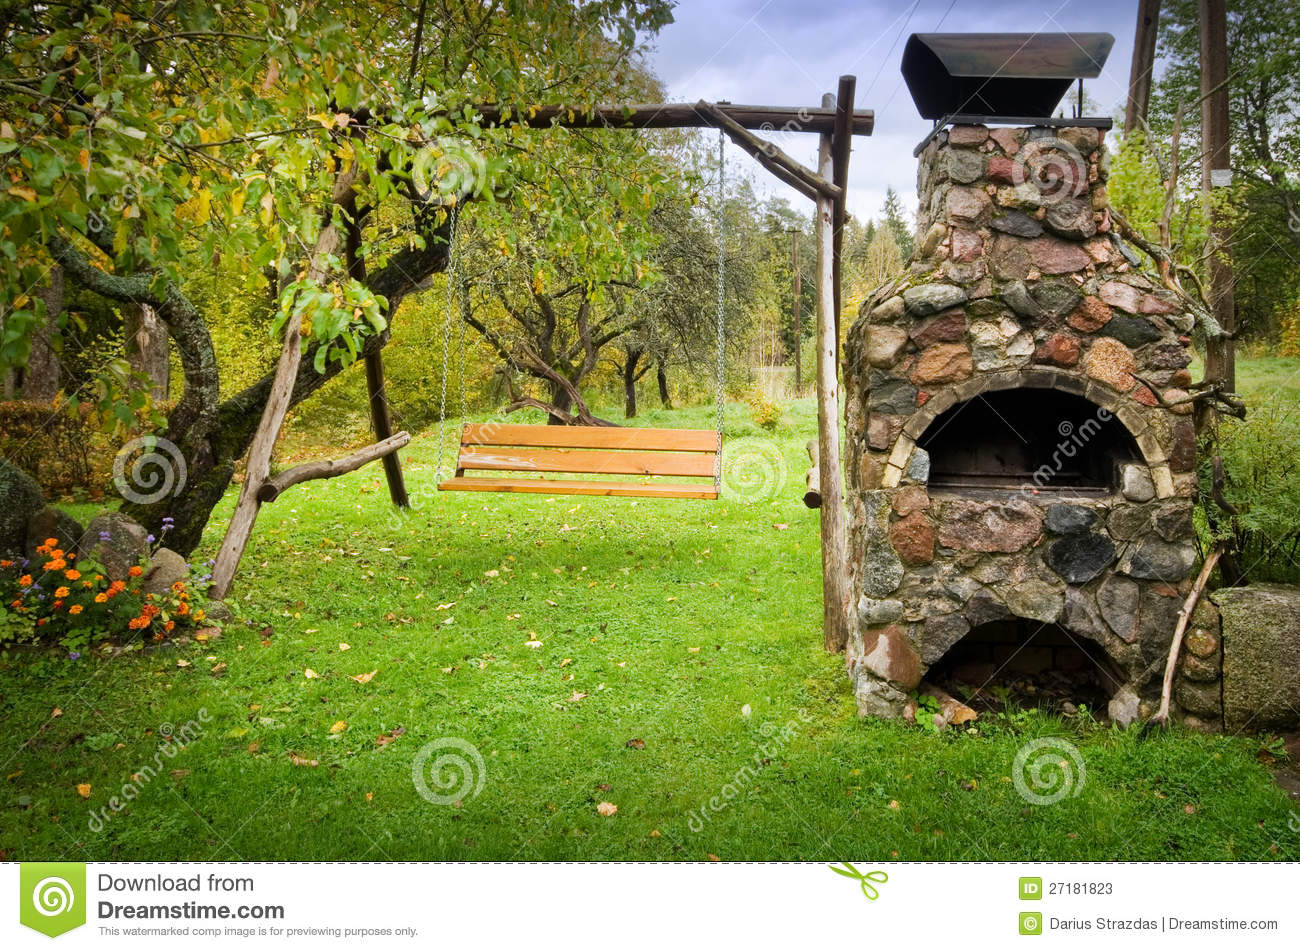 Outdoors fireplace and swing